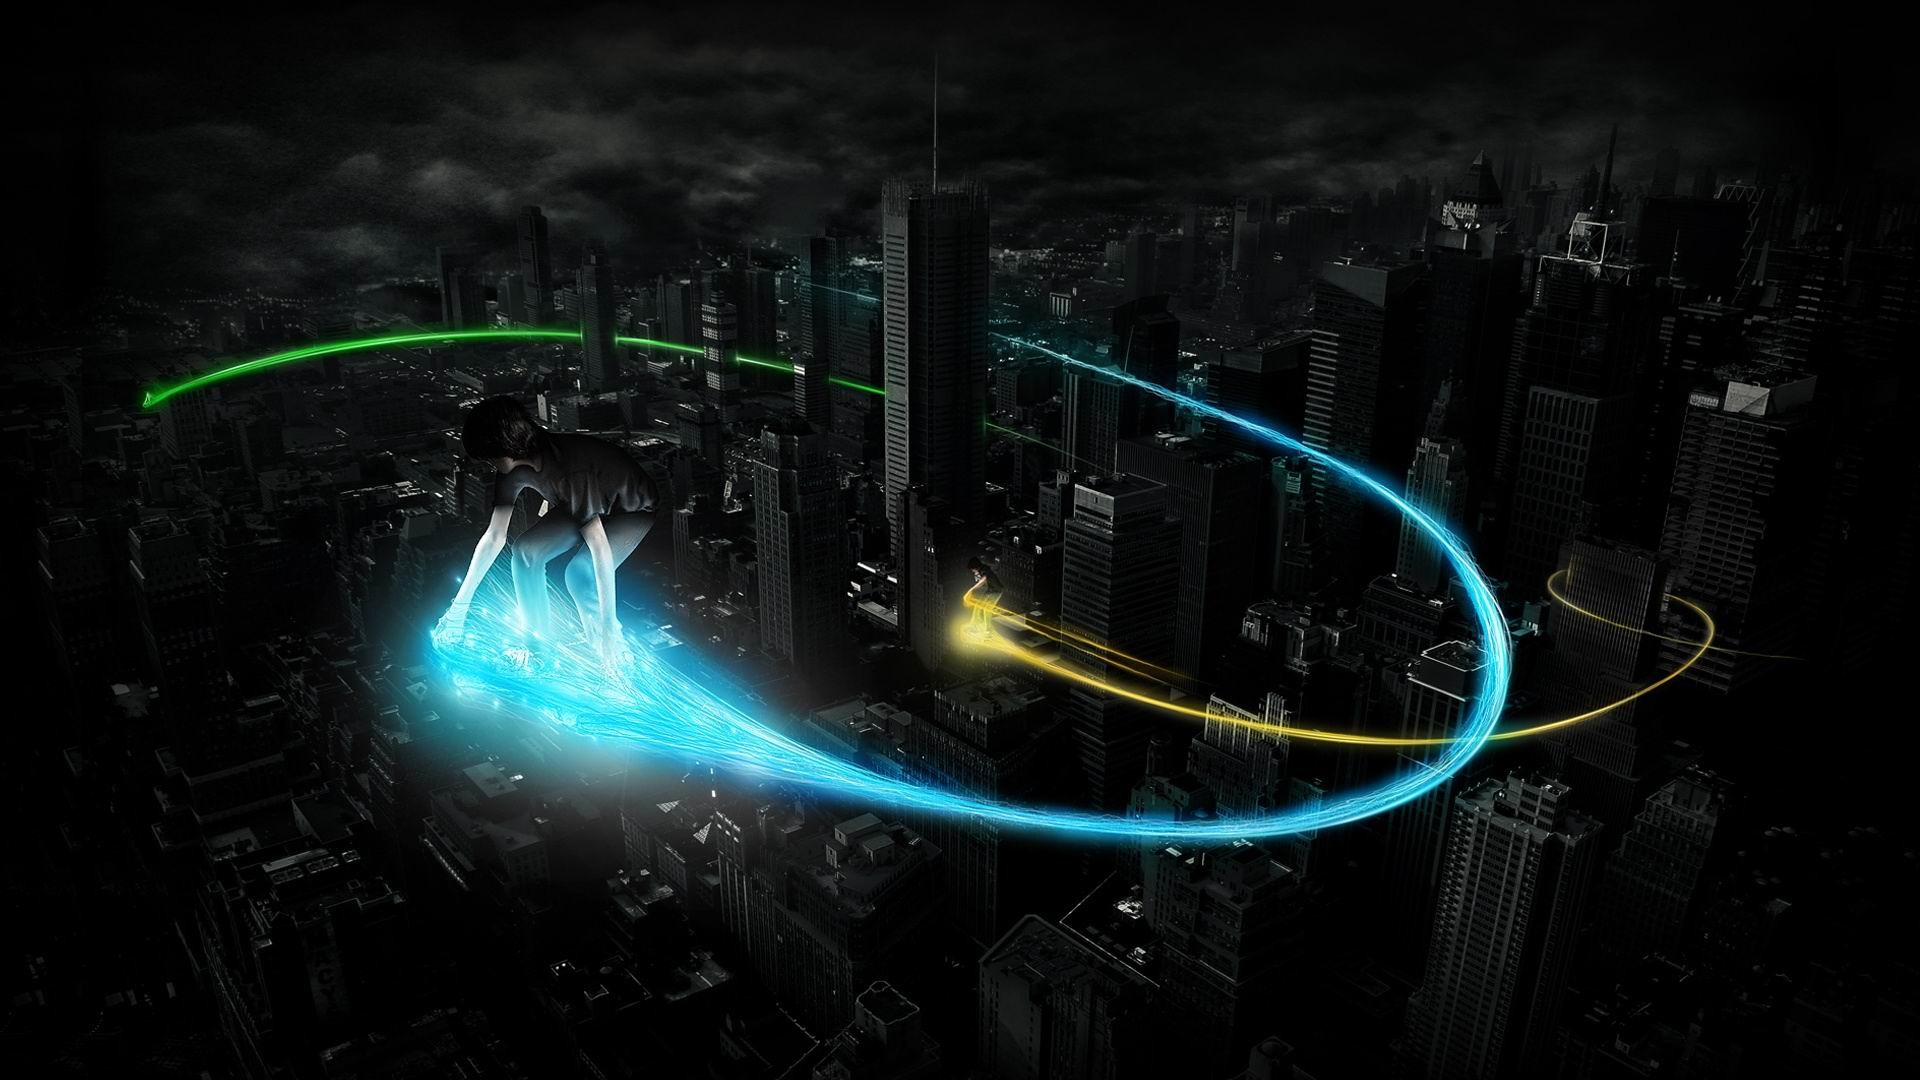 Skyboarding Creative Graphics Wallpaper 1920x1080 Wallpaper Download on 1206 html